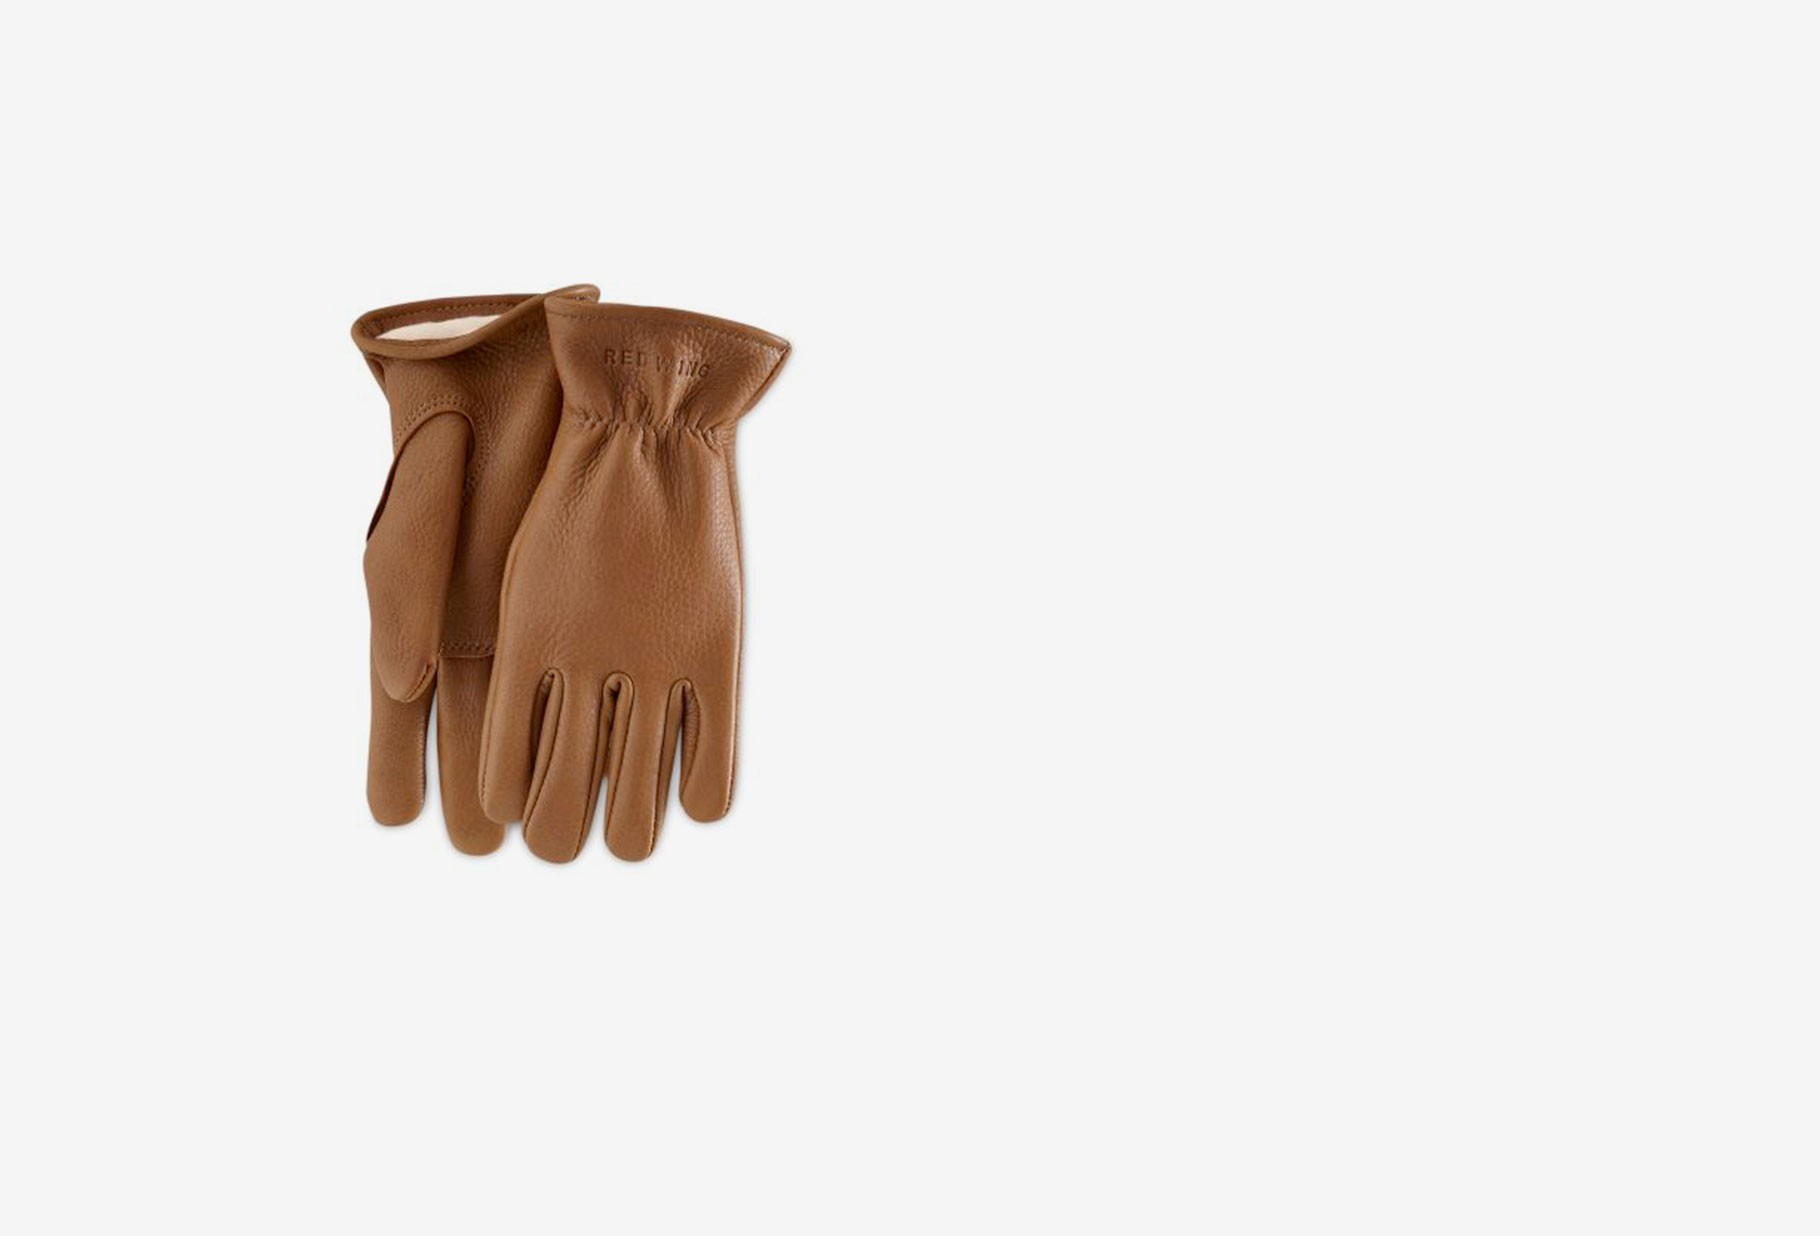 RED WING / Buckskin leather lined glove Style n.95230 nutmeg